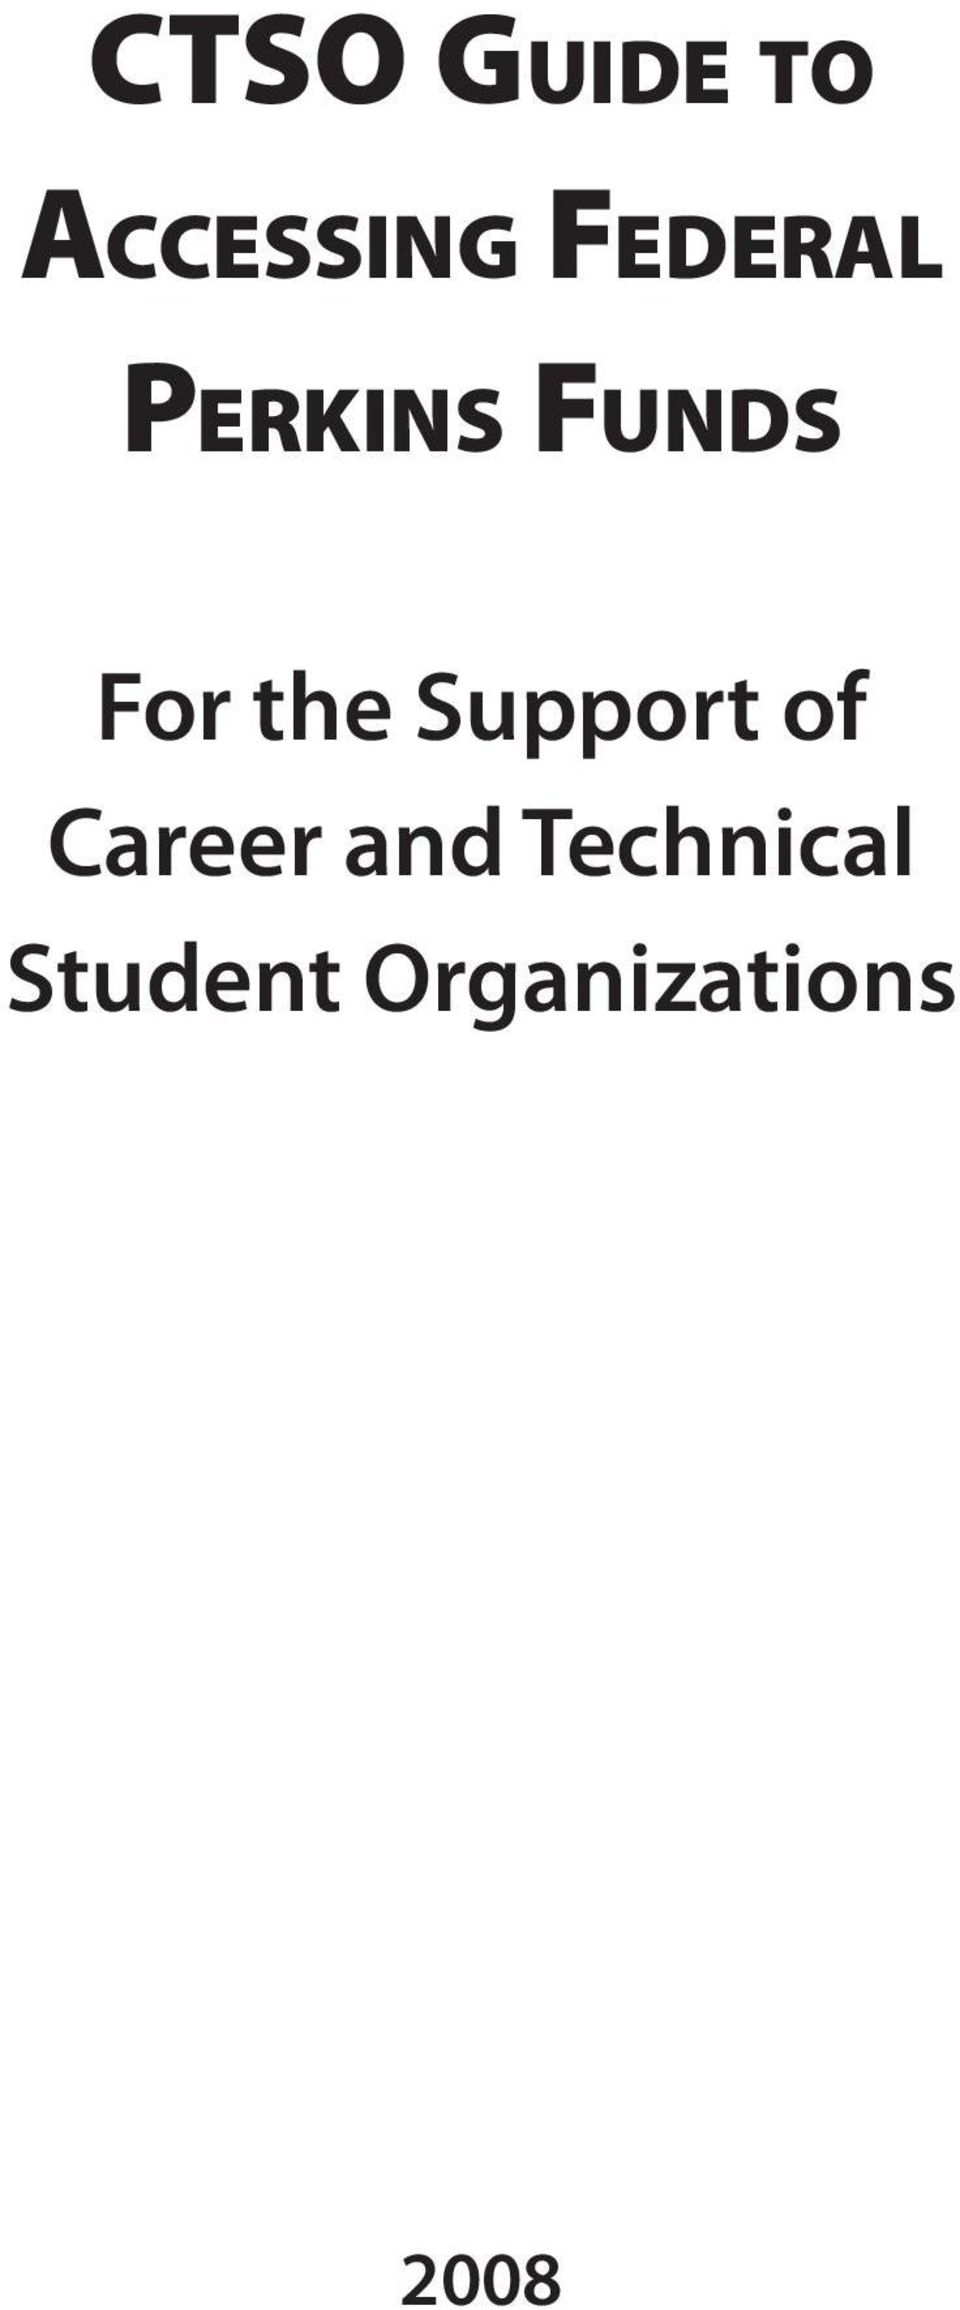 For the Support of Career and